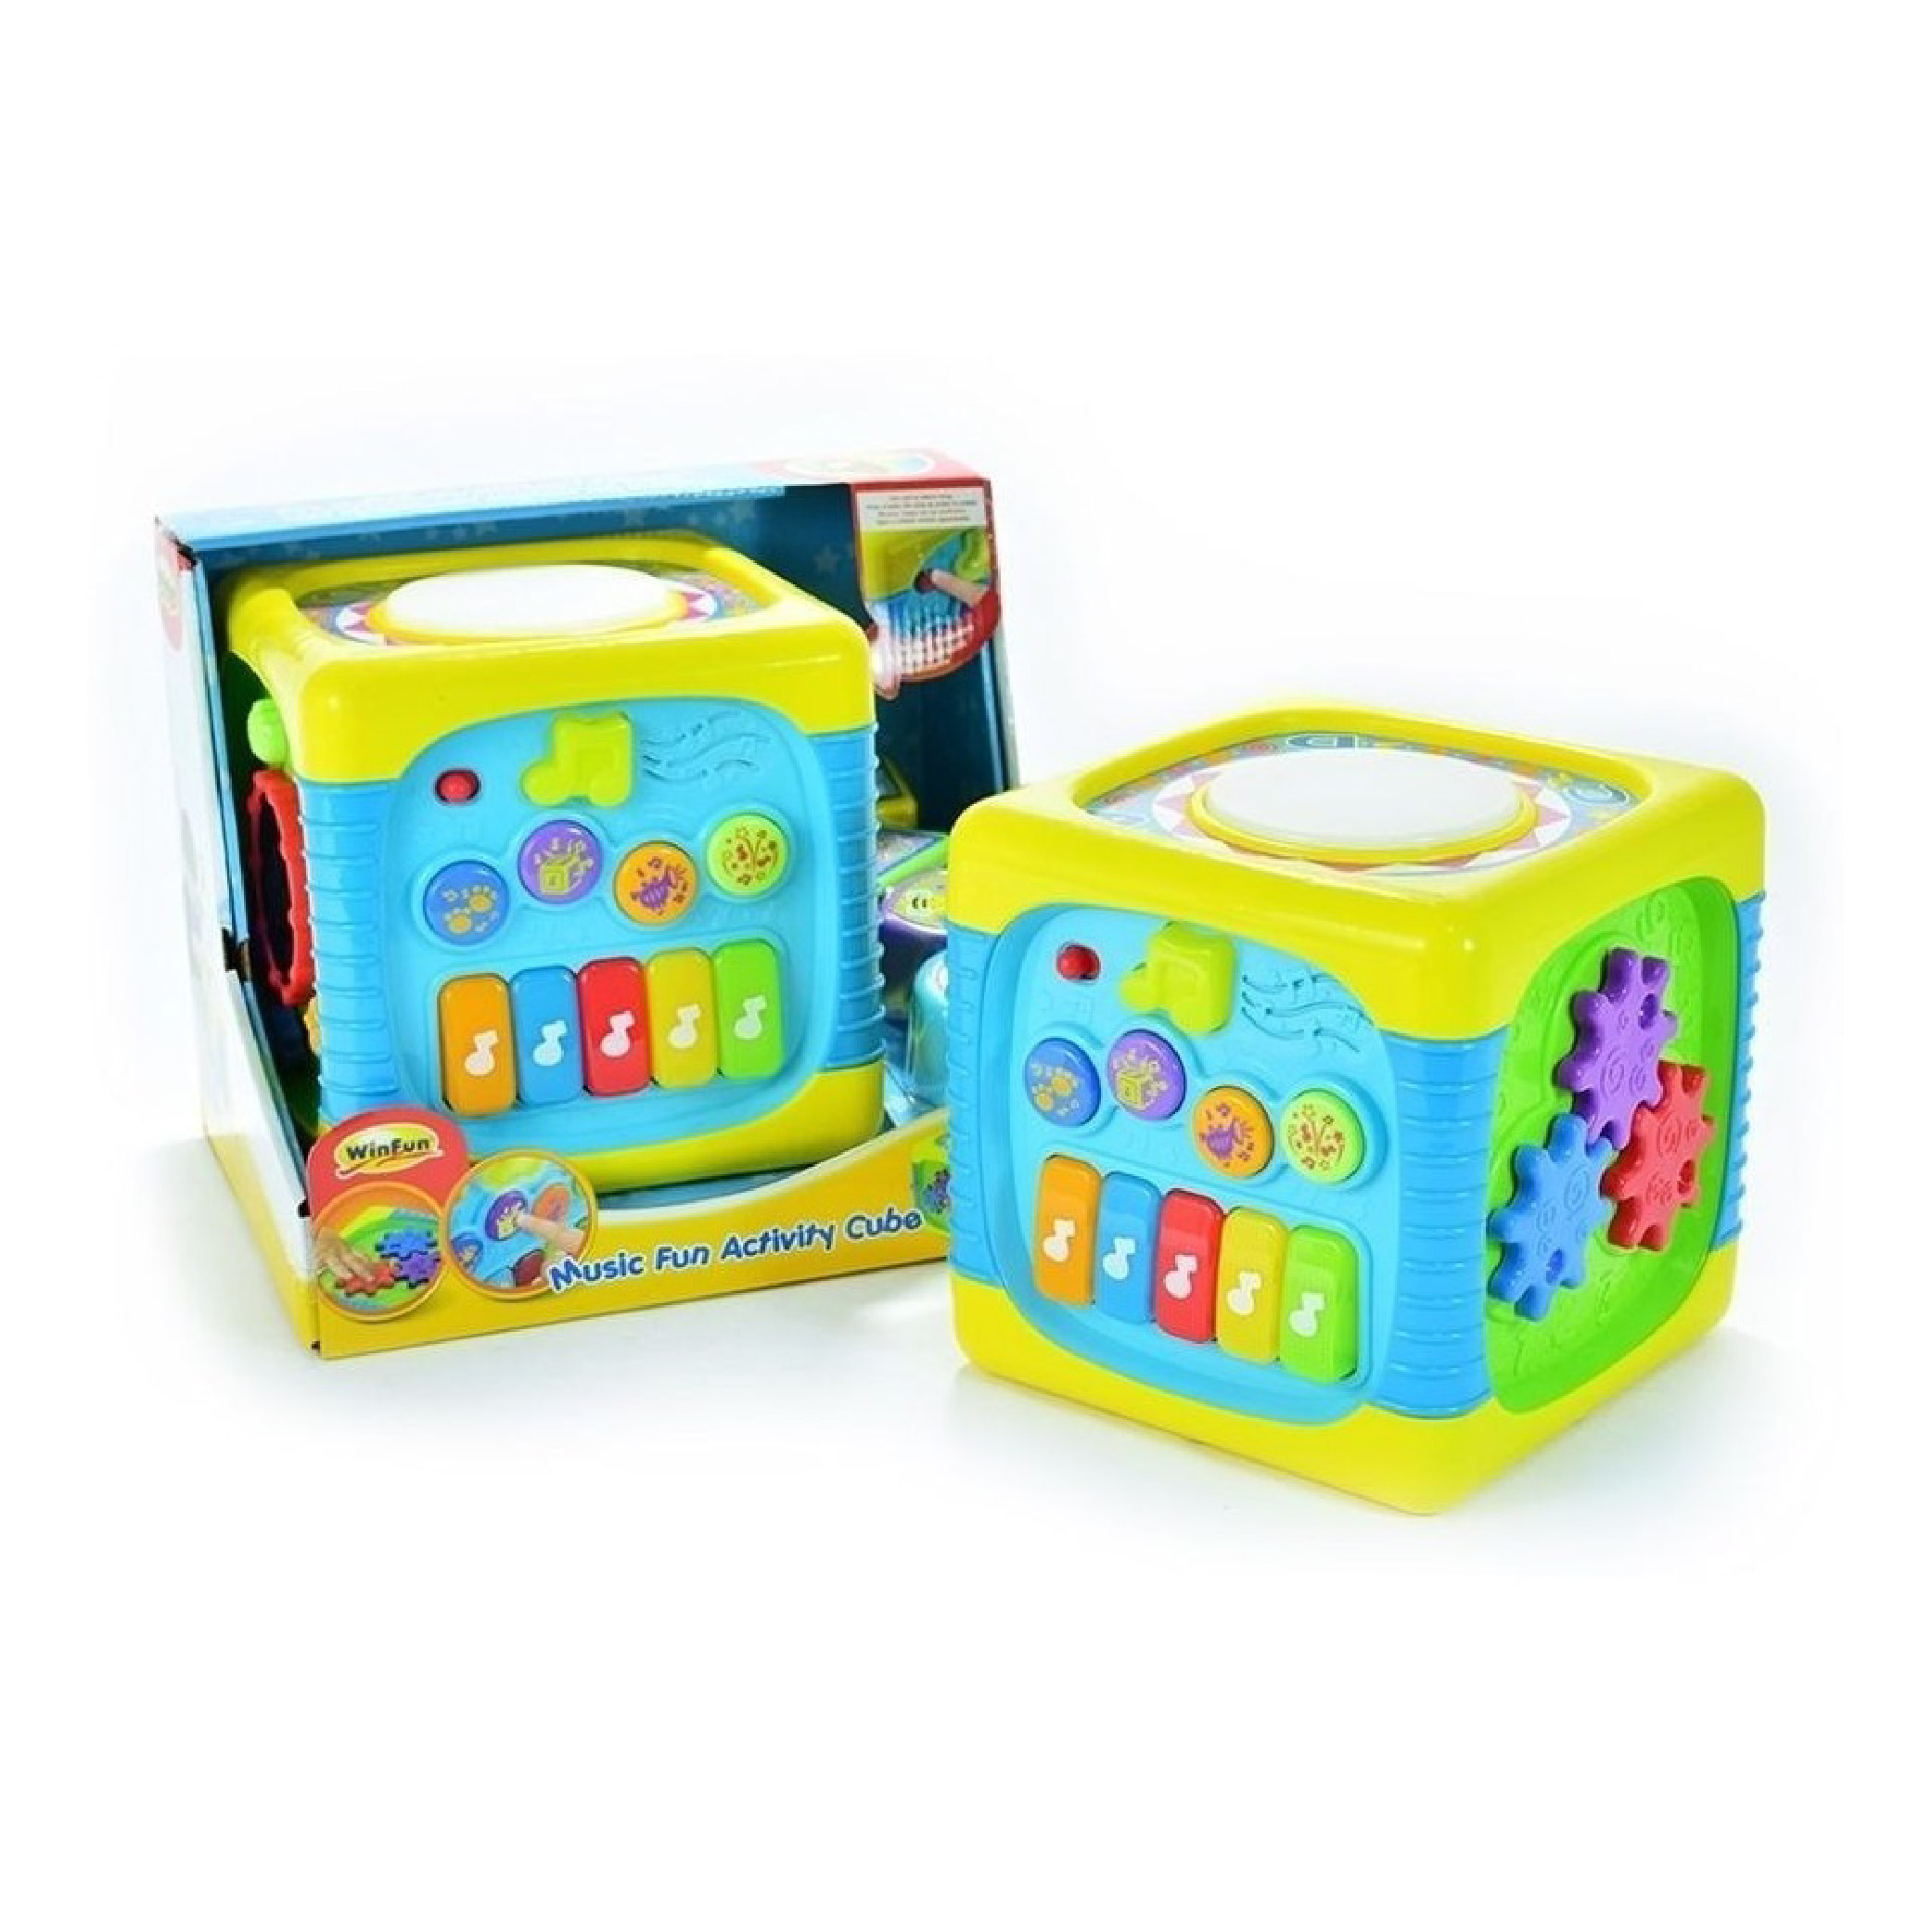 Lot 209-2_Winfun Music Fun Actvity Cube-5